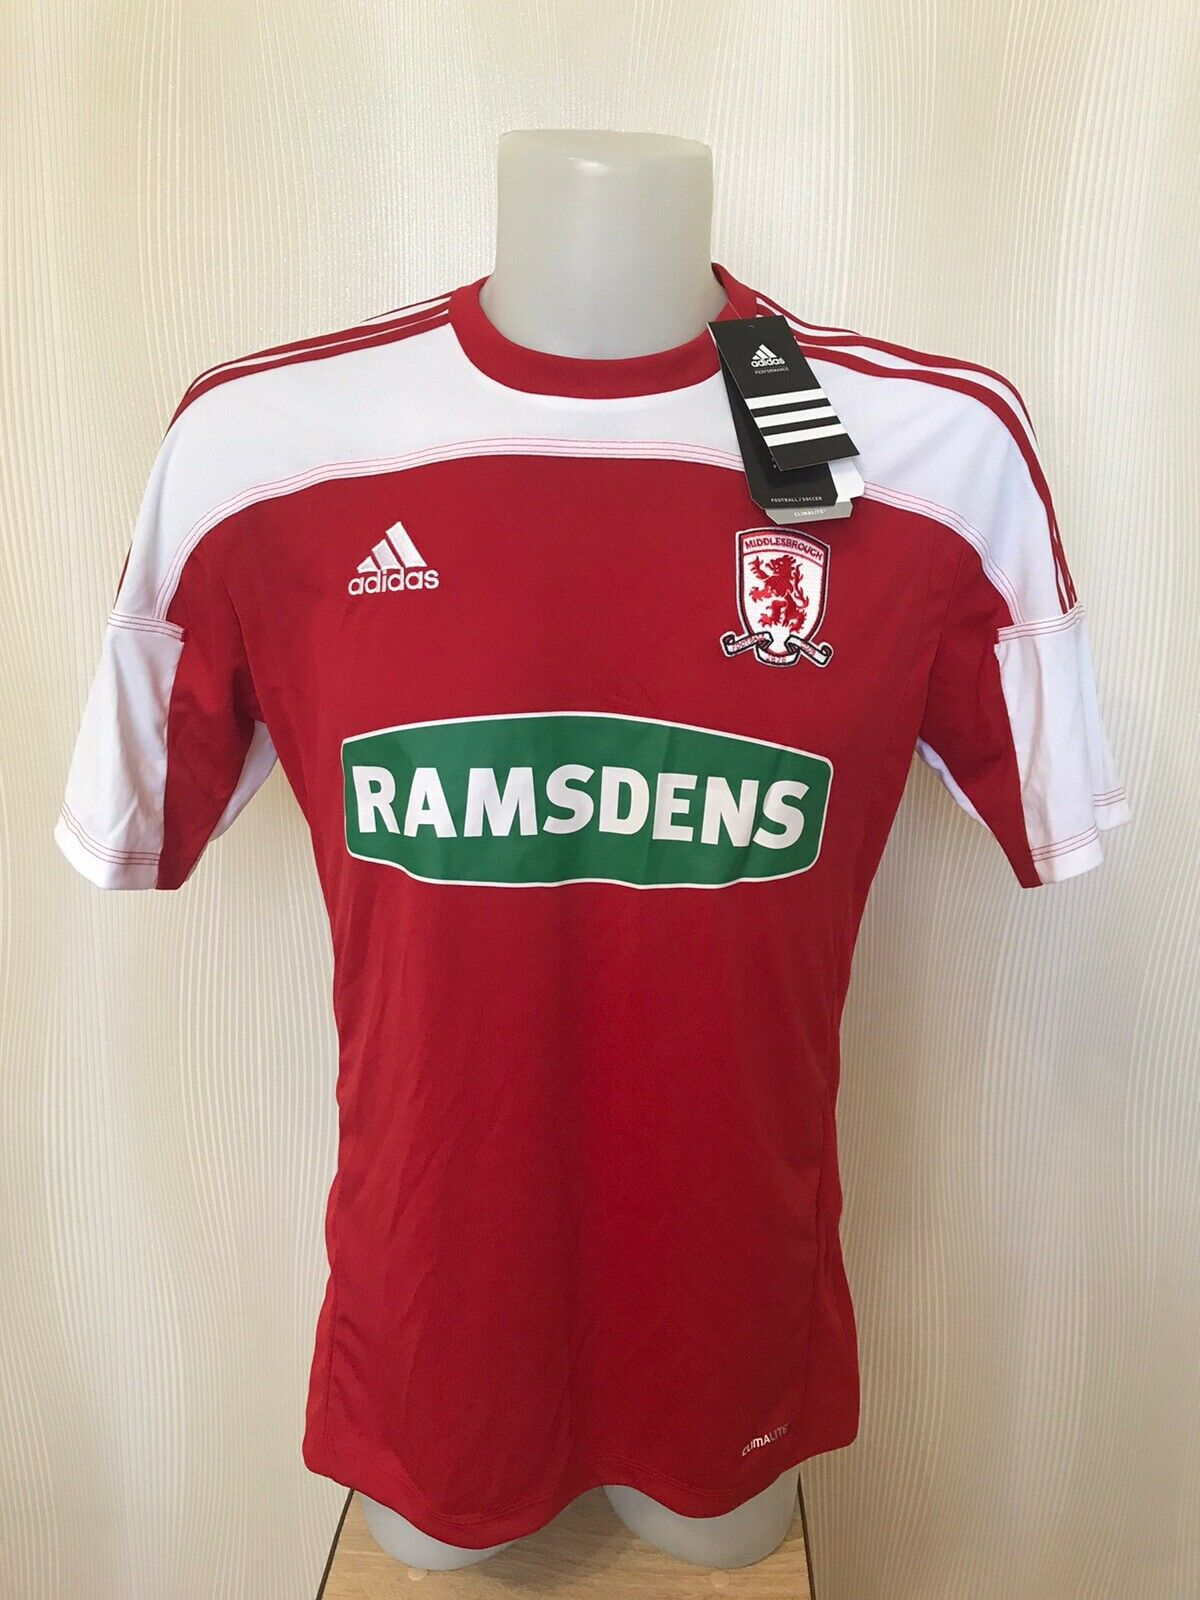 FC Middlesbrough 2011/2012 home Size S Adidas O56911 jersey